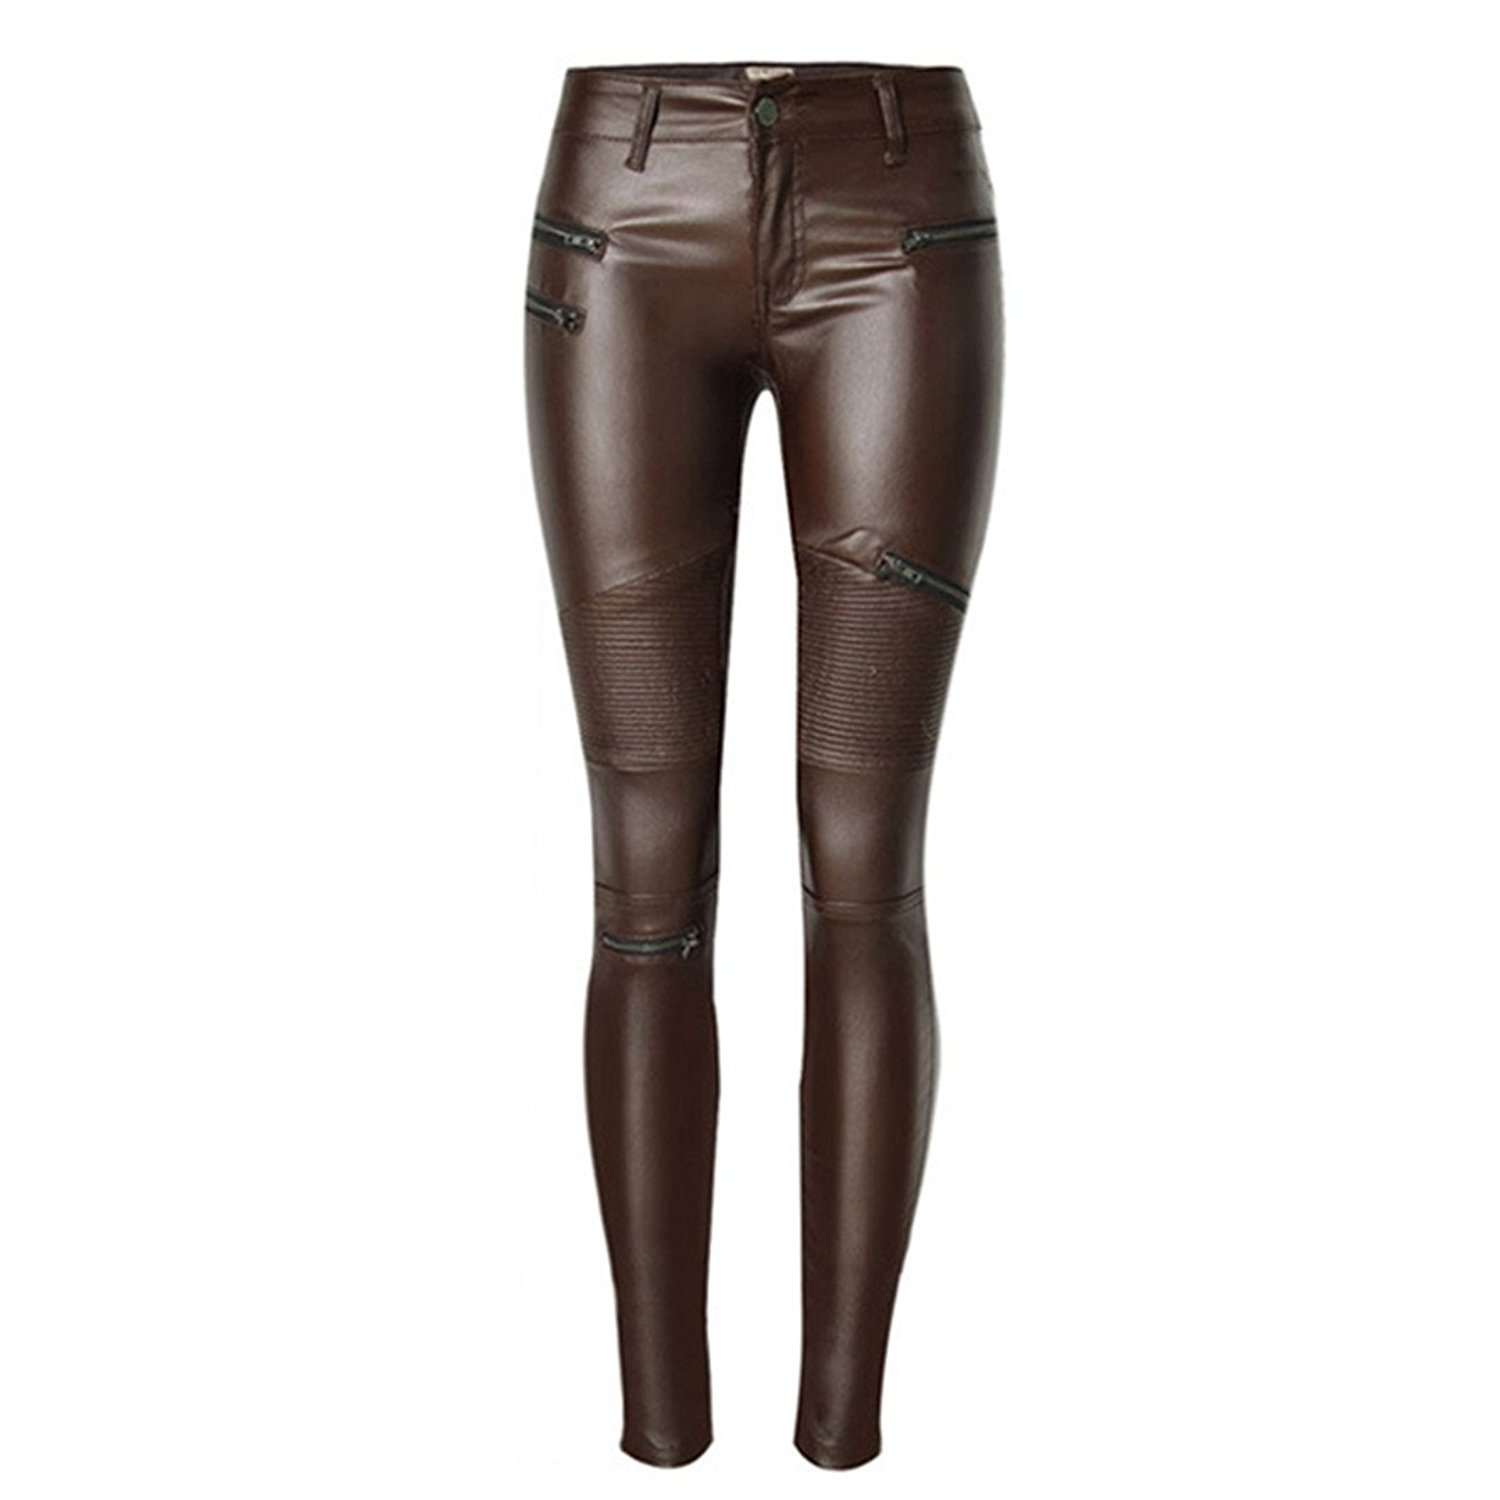 3a0770dfdf47 Get Quotations · Leat Women  S Sexy PU Leather Pants Brown Zipper  Motorcycle PU Women  S Pencil